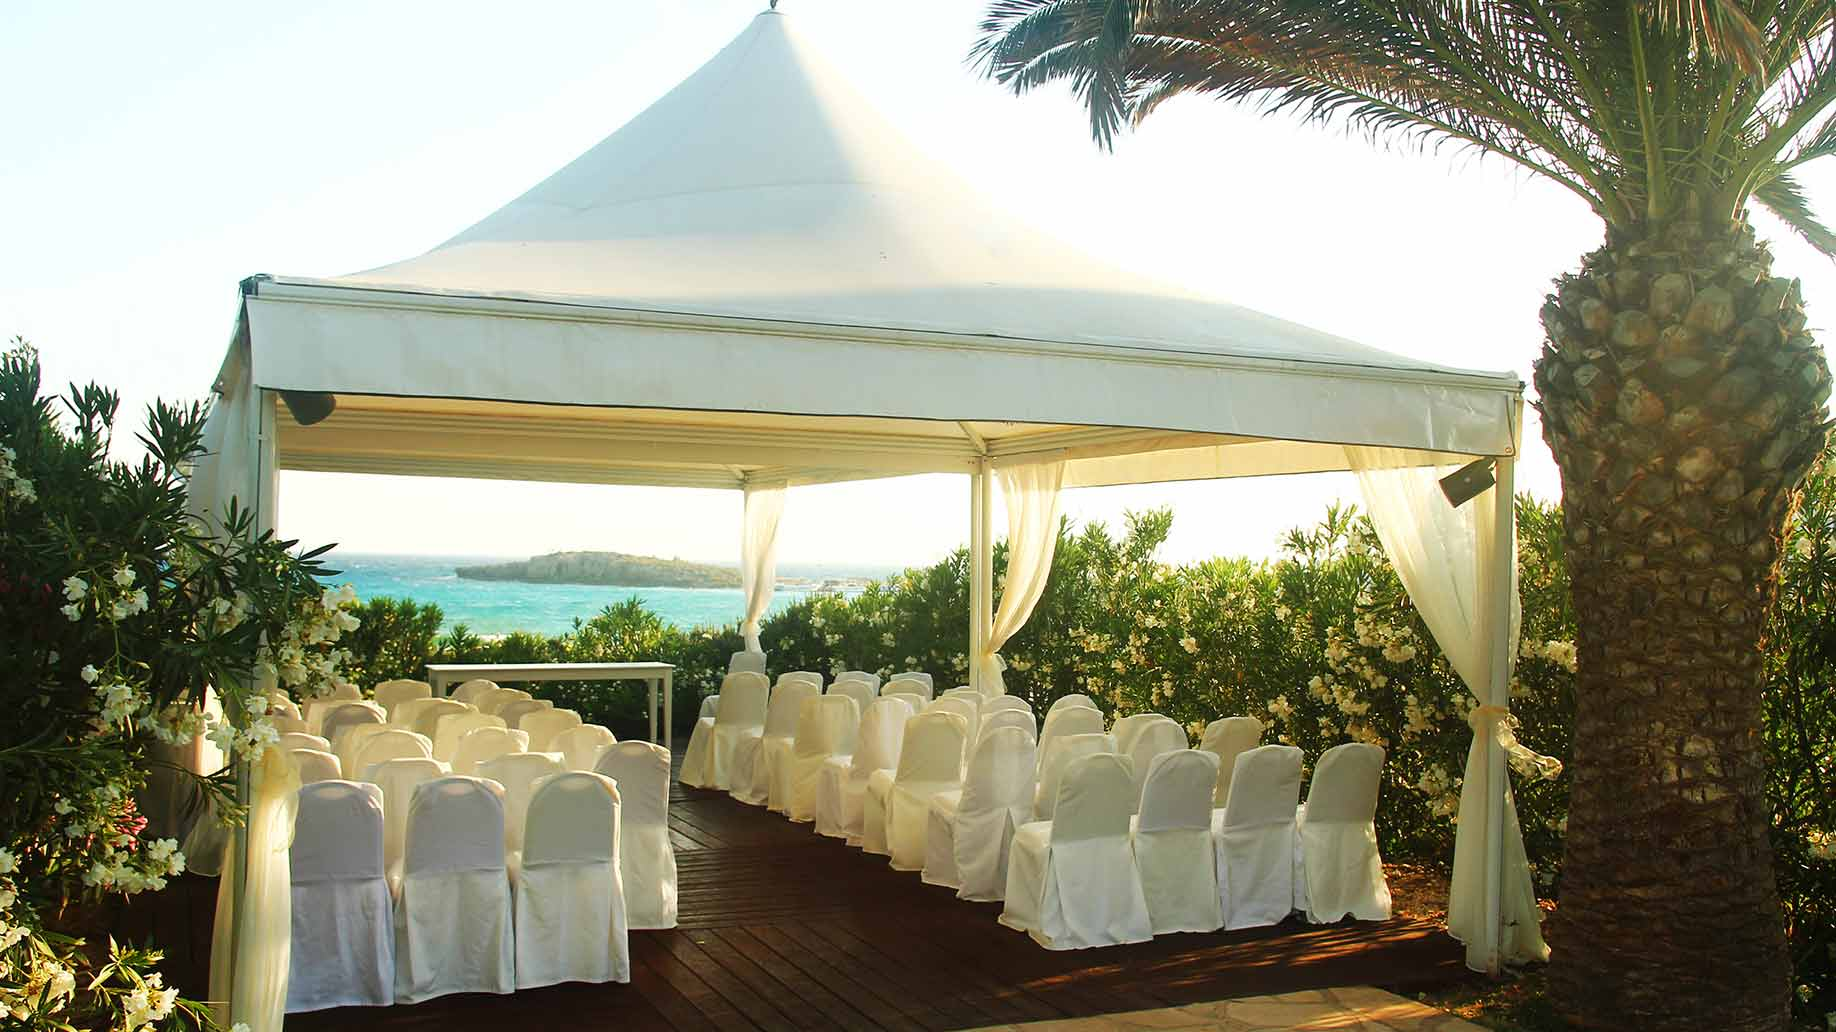 Marshall Tent and Event Rental  Home  Facebook